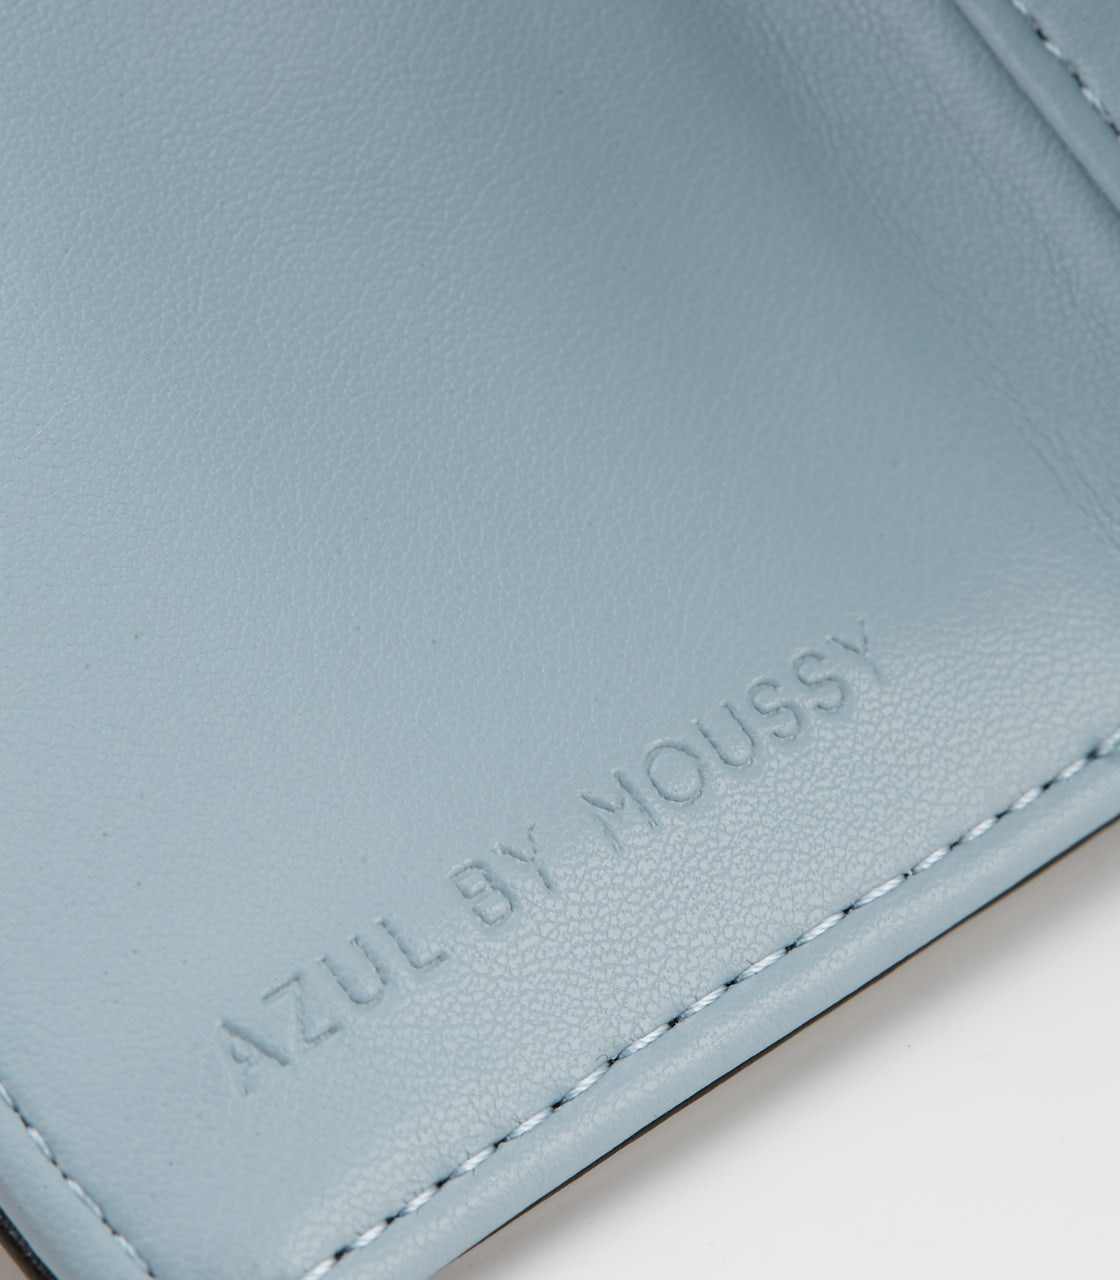 【AZUL BY MOUSSY】COLOR POINT COMPACT WALLET 詳細画像 BLK 5